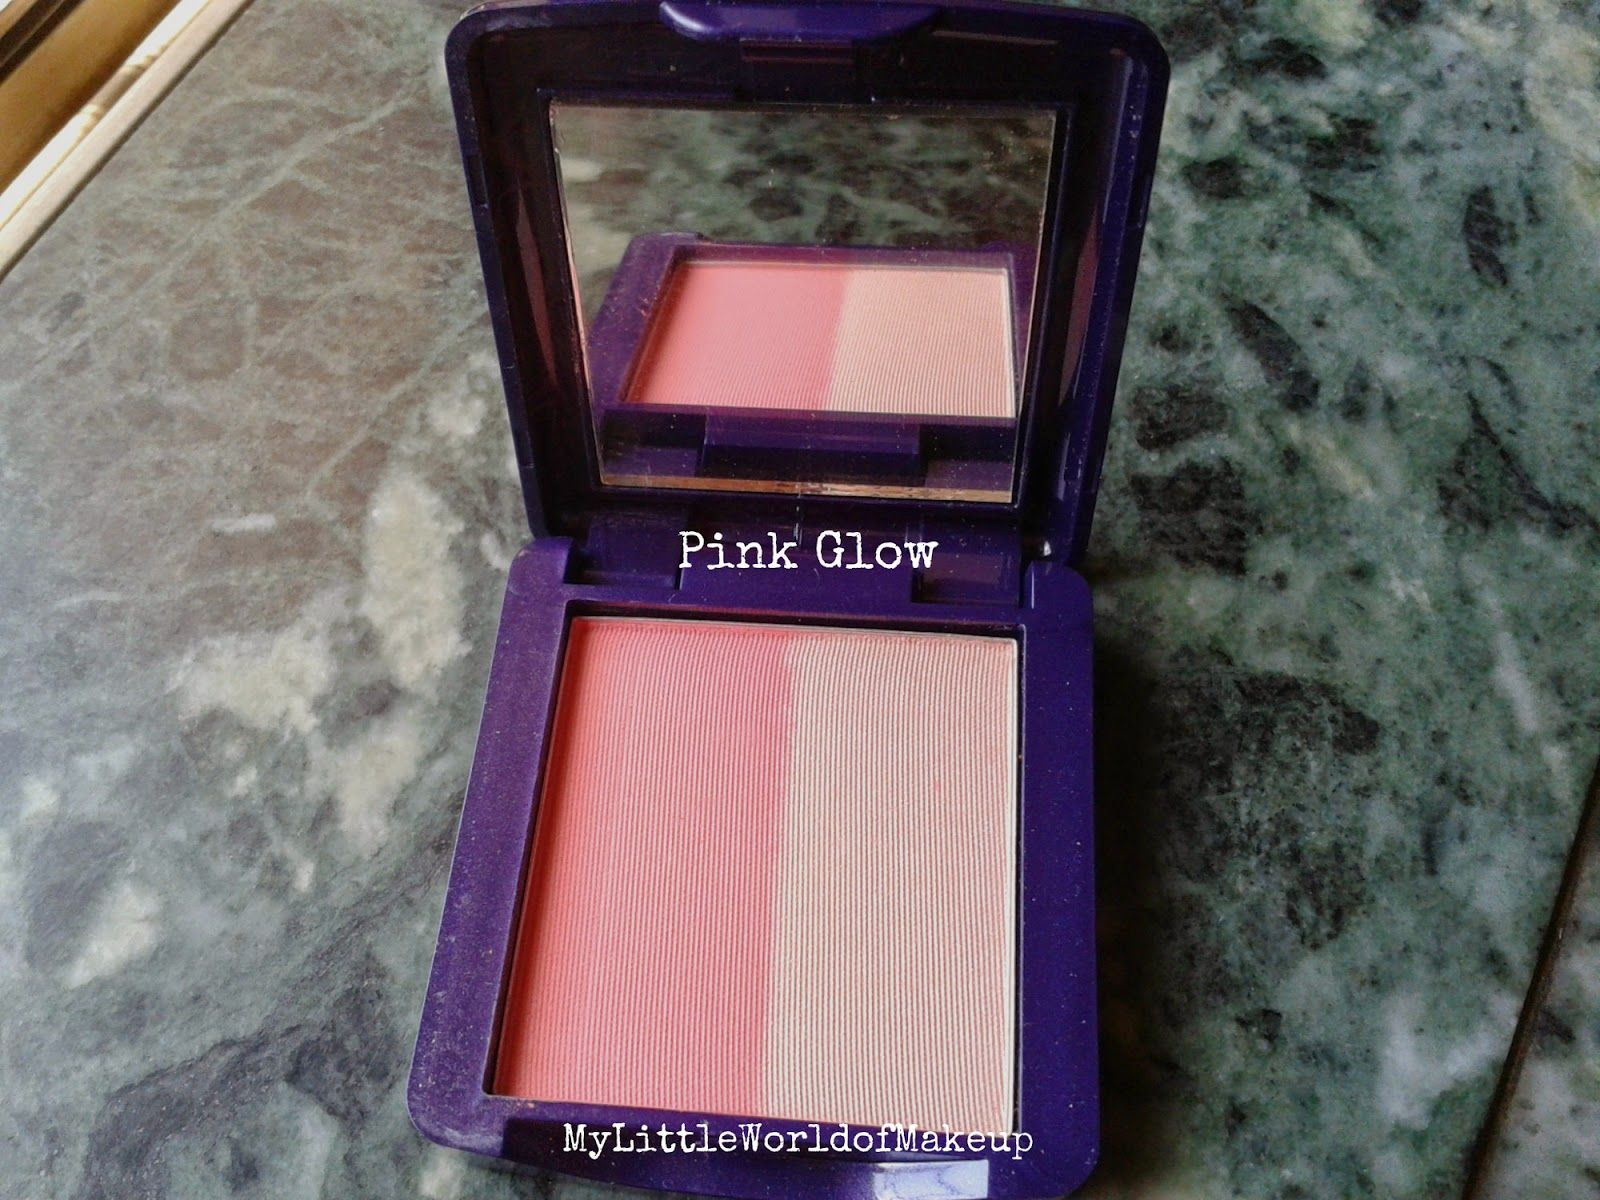 My Little World of Make up: Oriflame - The One illuskin Blush in Pink Glow Rev...